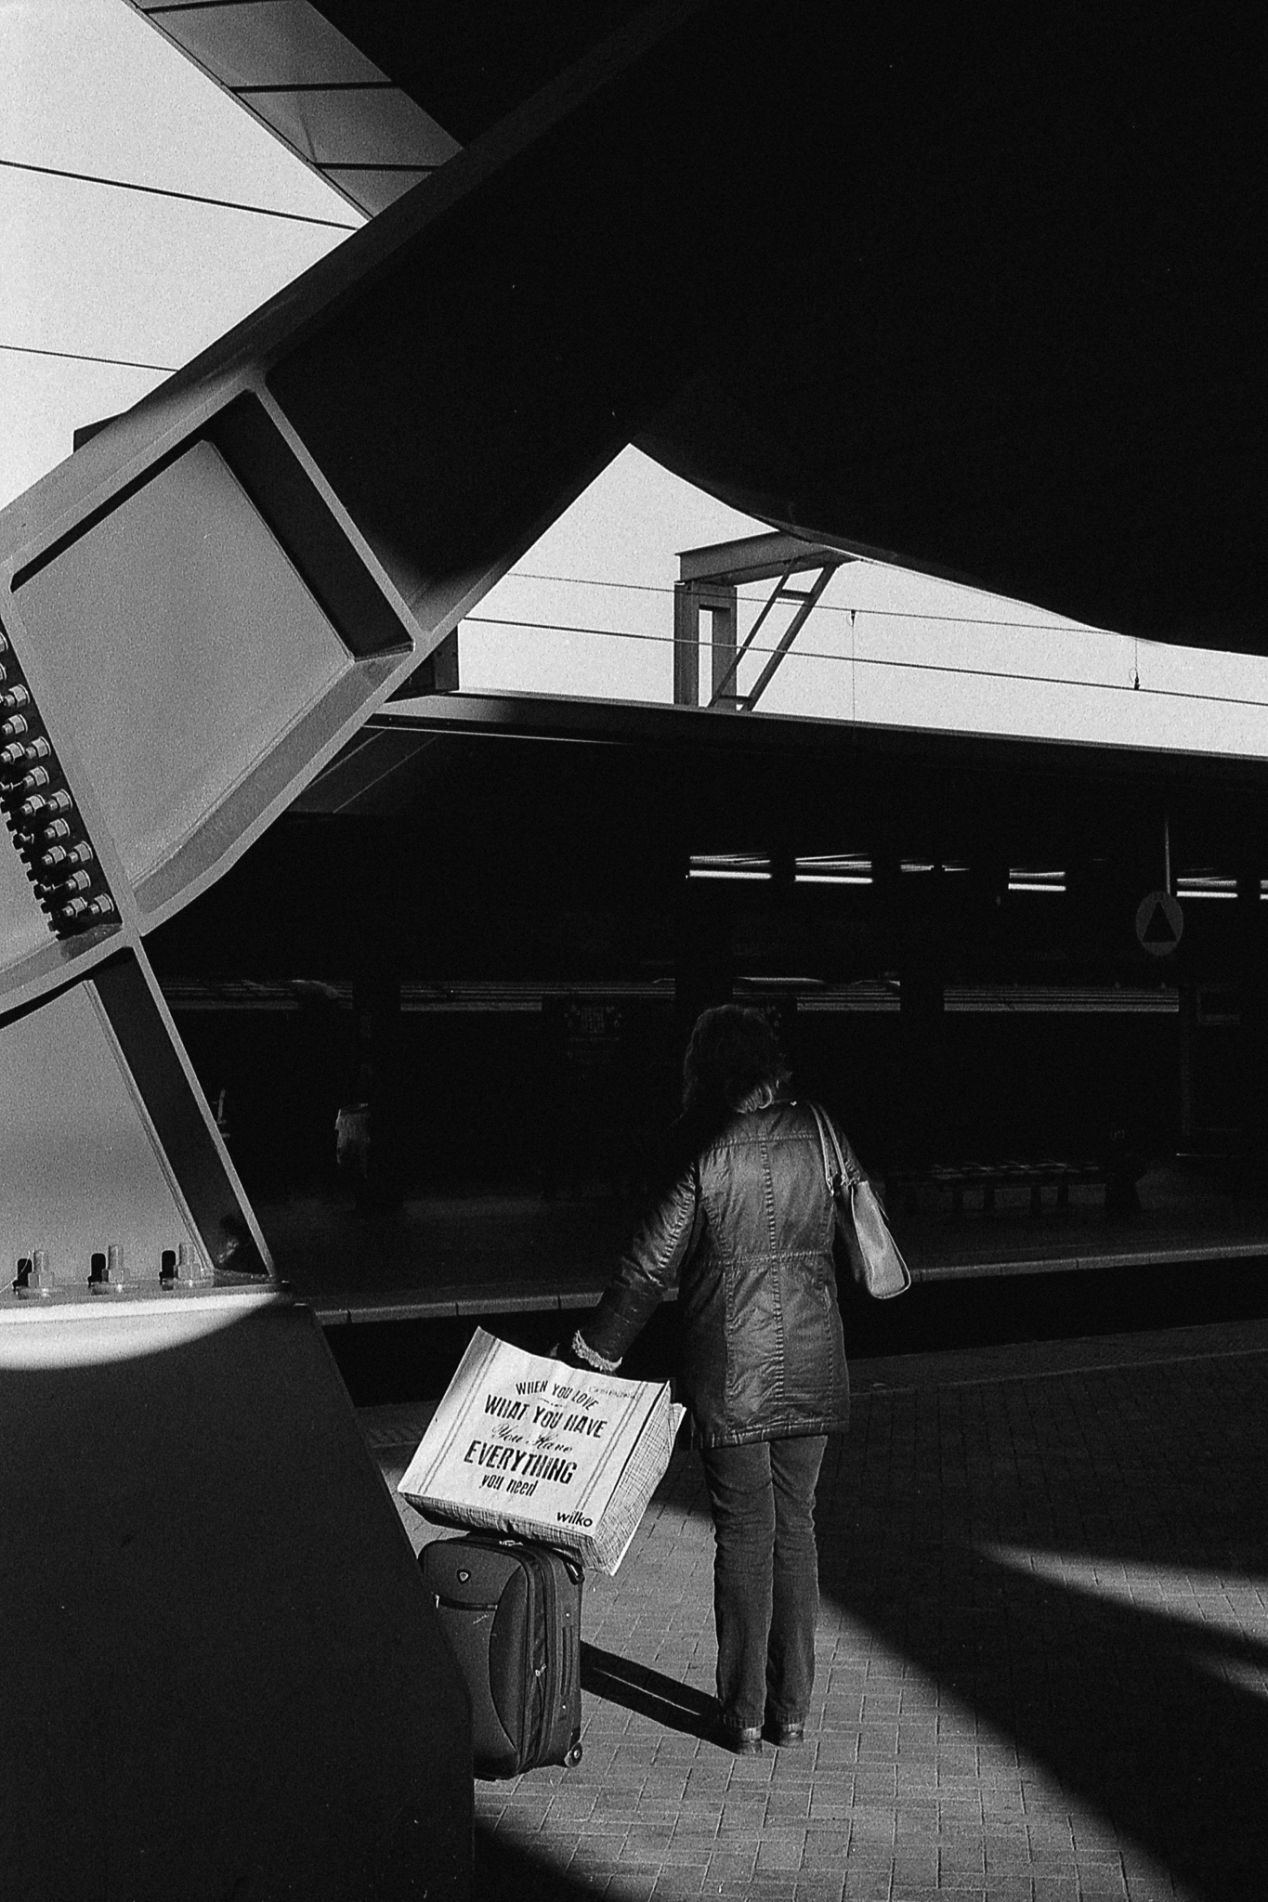 Passenger. Reading Station, UK. Ilford HP5, pushed to 1600.